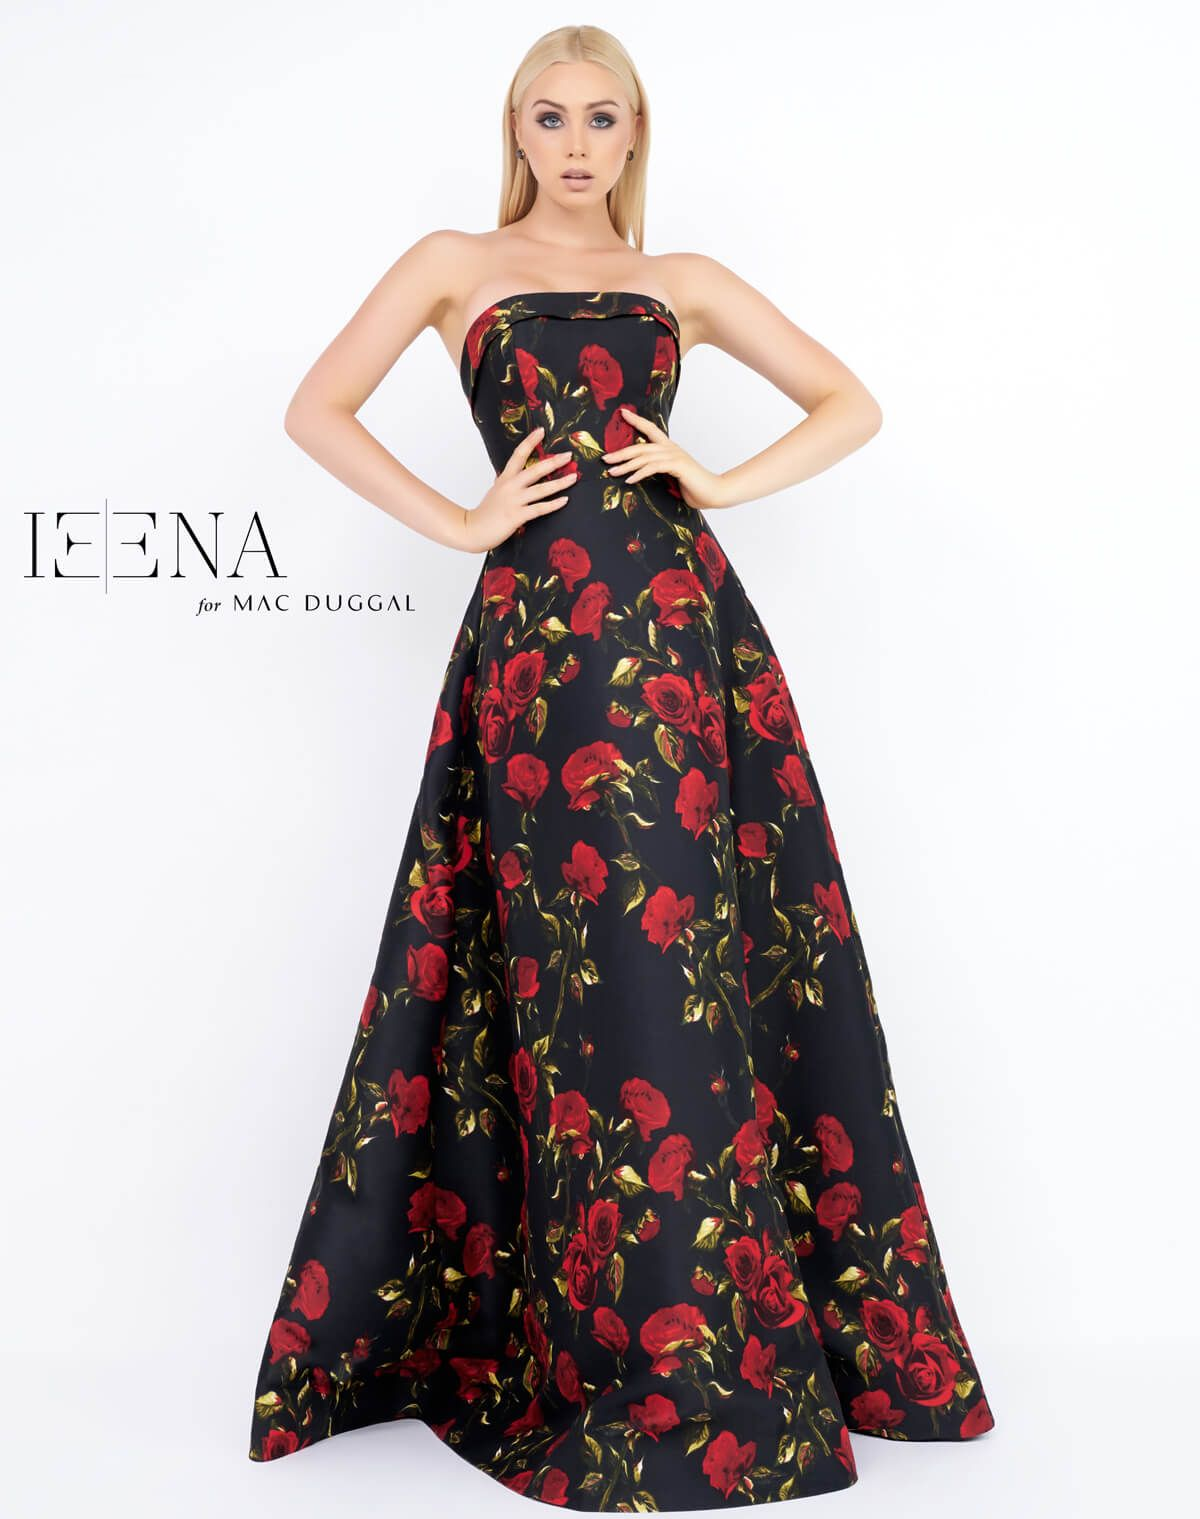 Ieena duggal style i is a stand out look flawless in floral